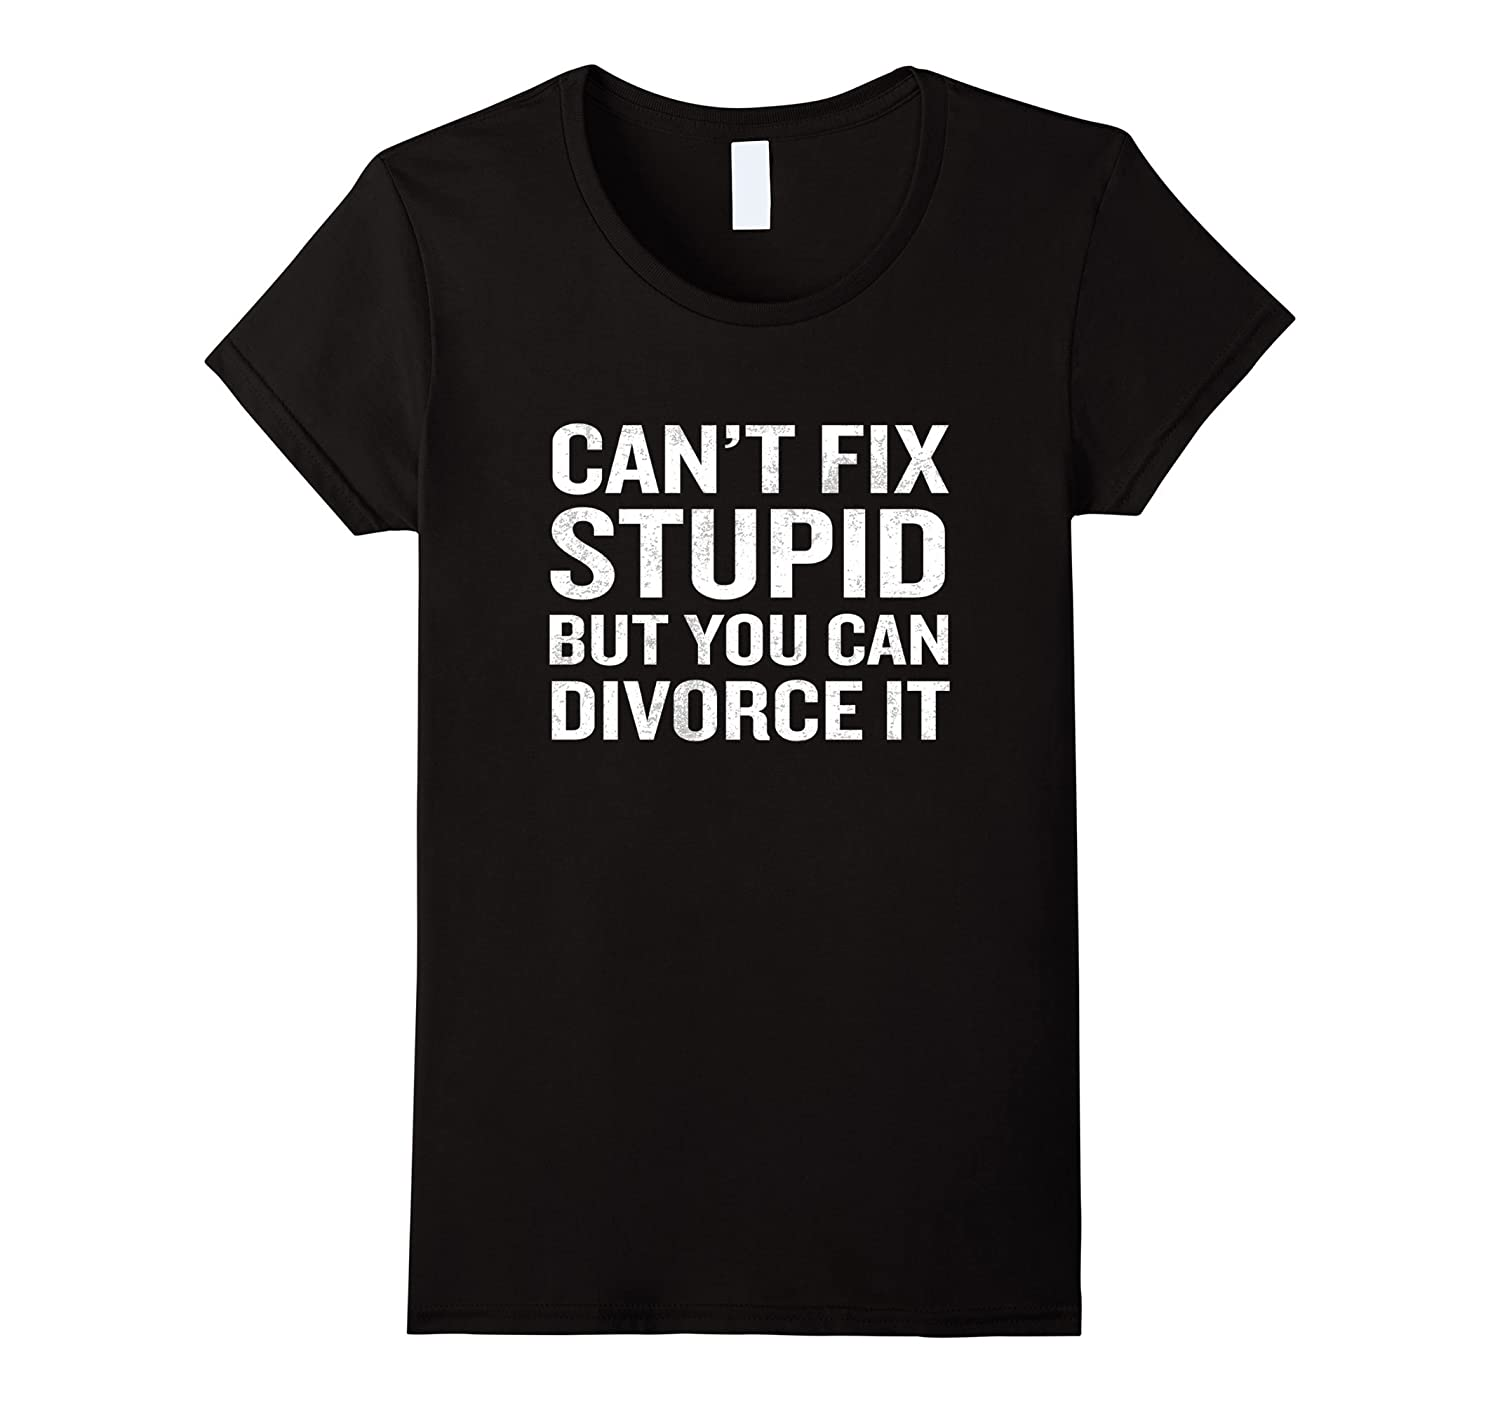 Can't Fix Stupid But You Can Divorce It T-Shirt Funny Joke